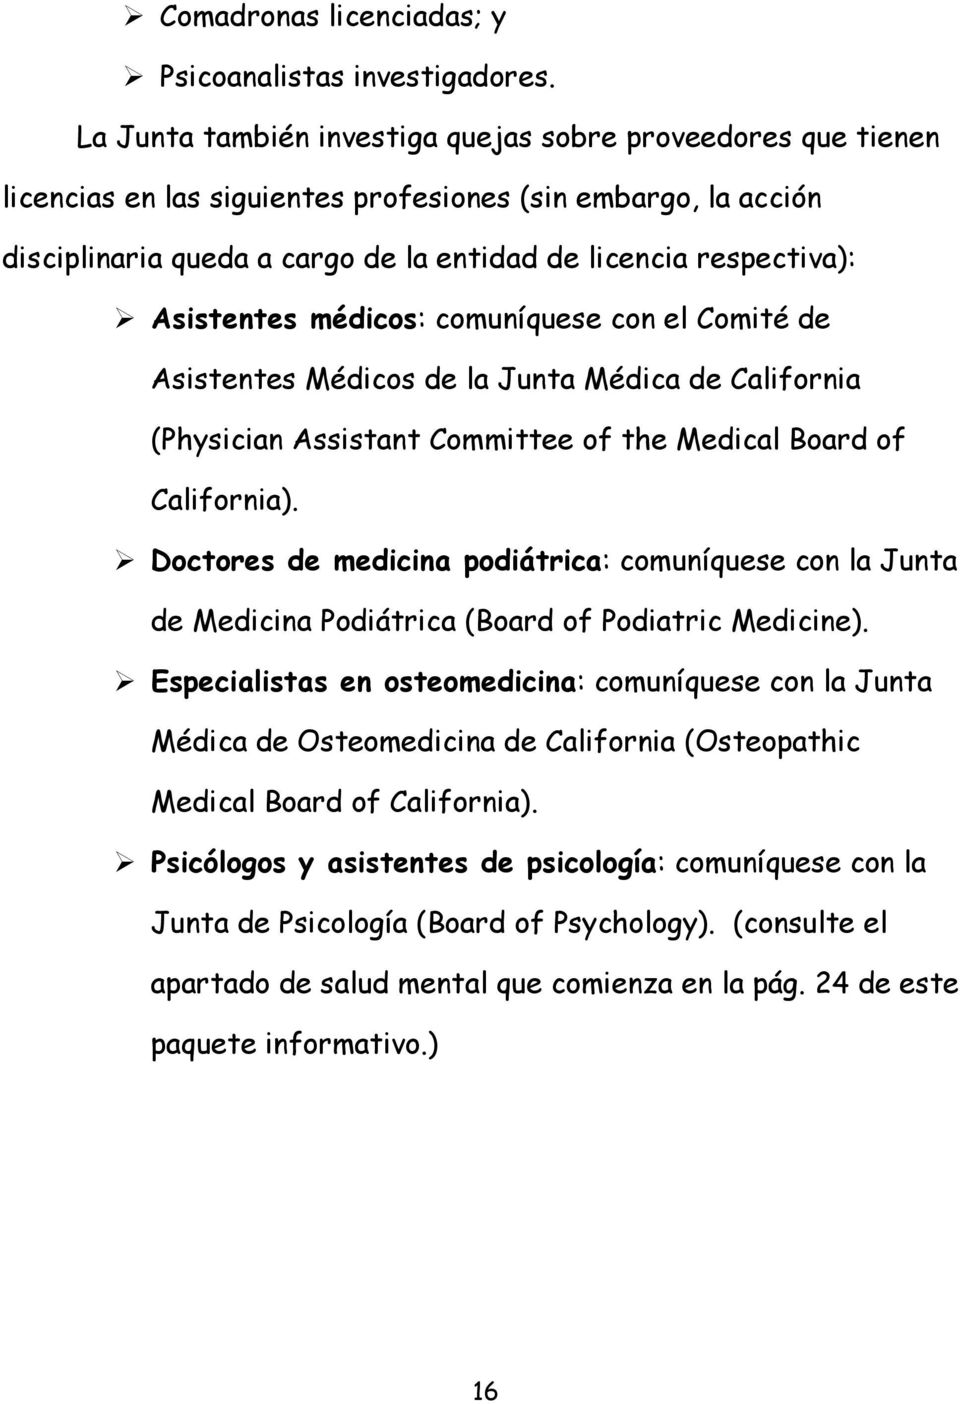 Asistentes médicos: comuníquese con el Comité de Asistentes Médicos de la Junta Médica de California (Physician Assistant Committee of the Medical Board of California).